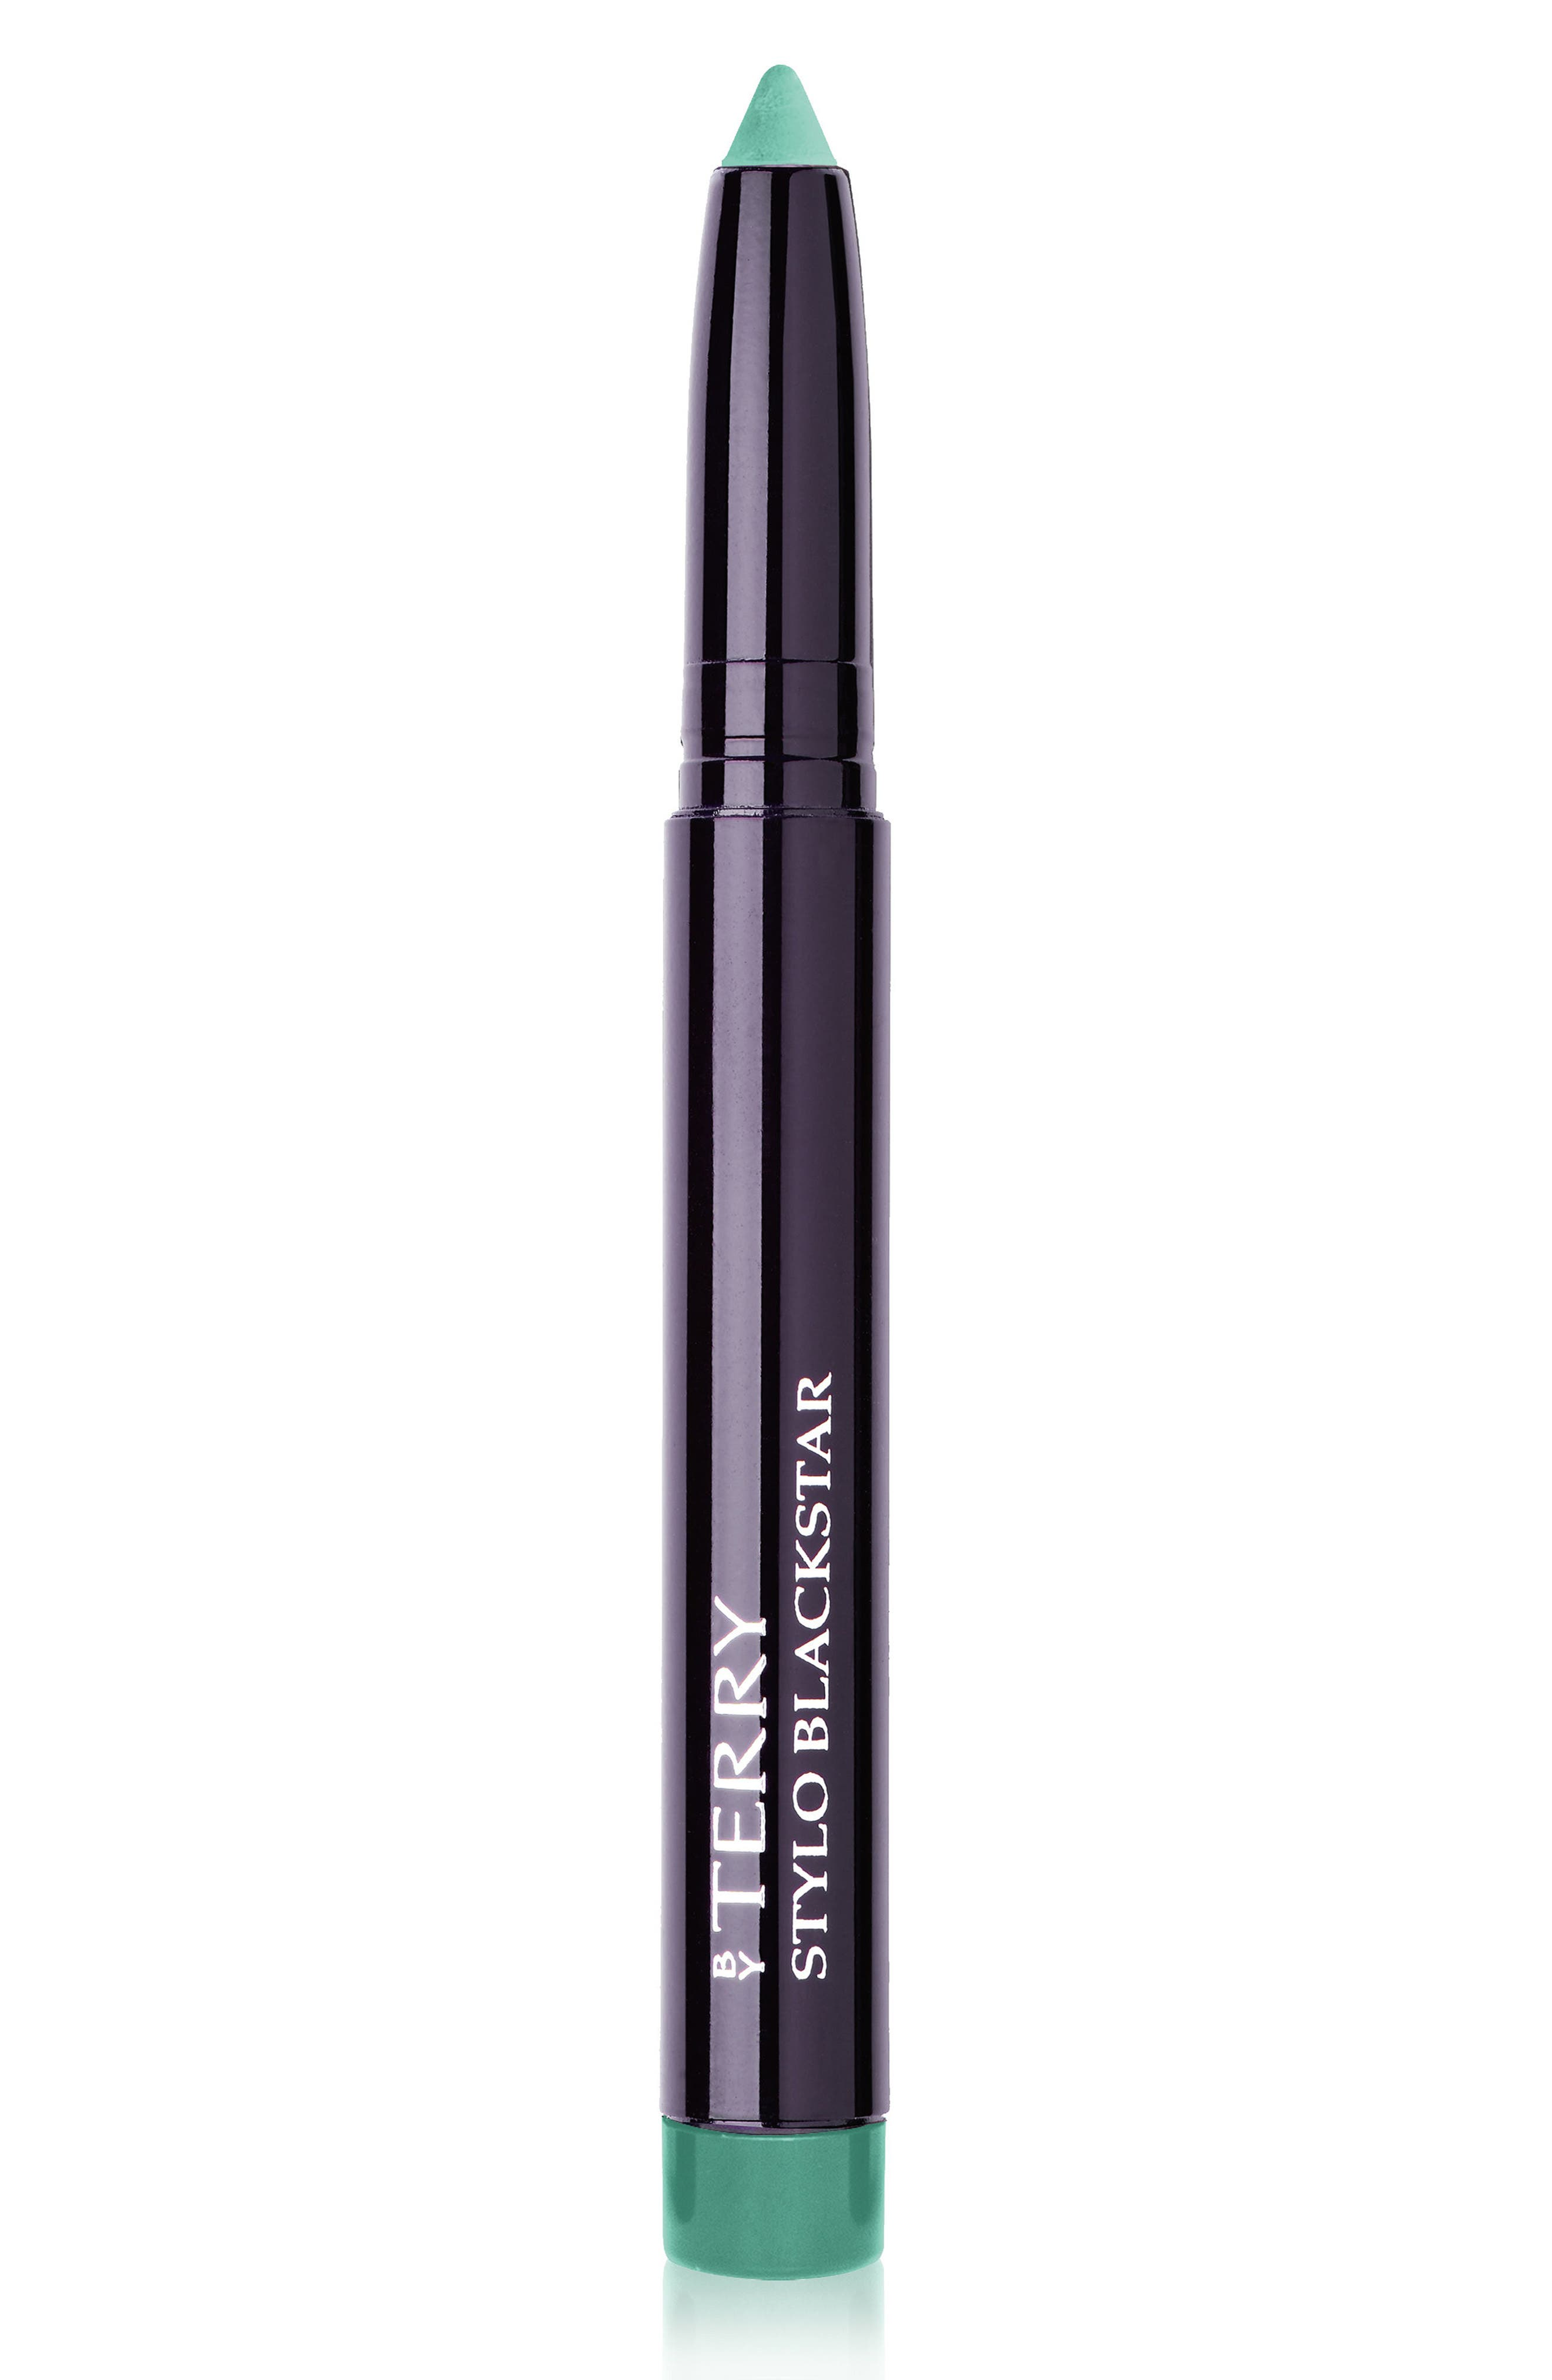 SPACE.NK.apothecary By Terry Stylo Blackstar Waterproof 3-in-1 Eye Pencil